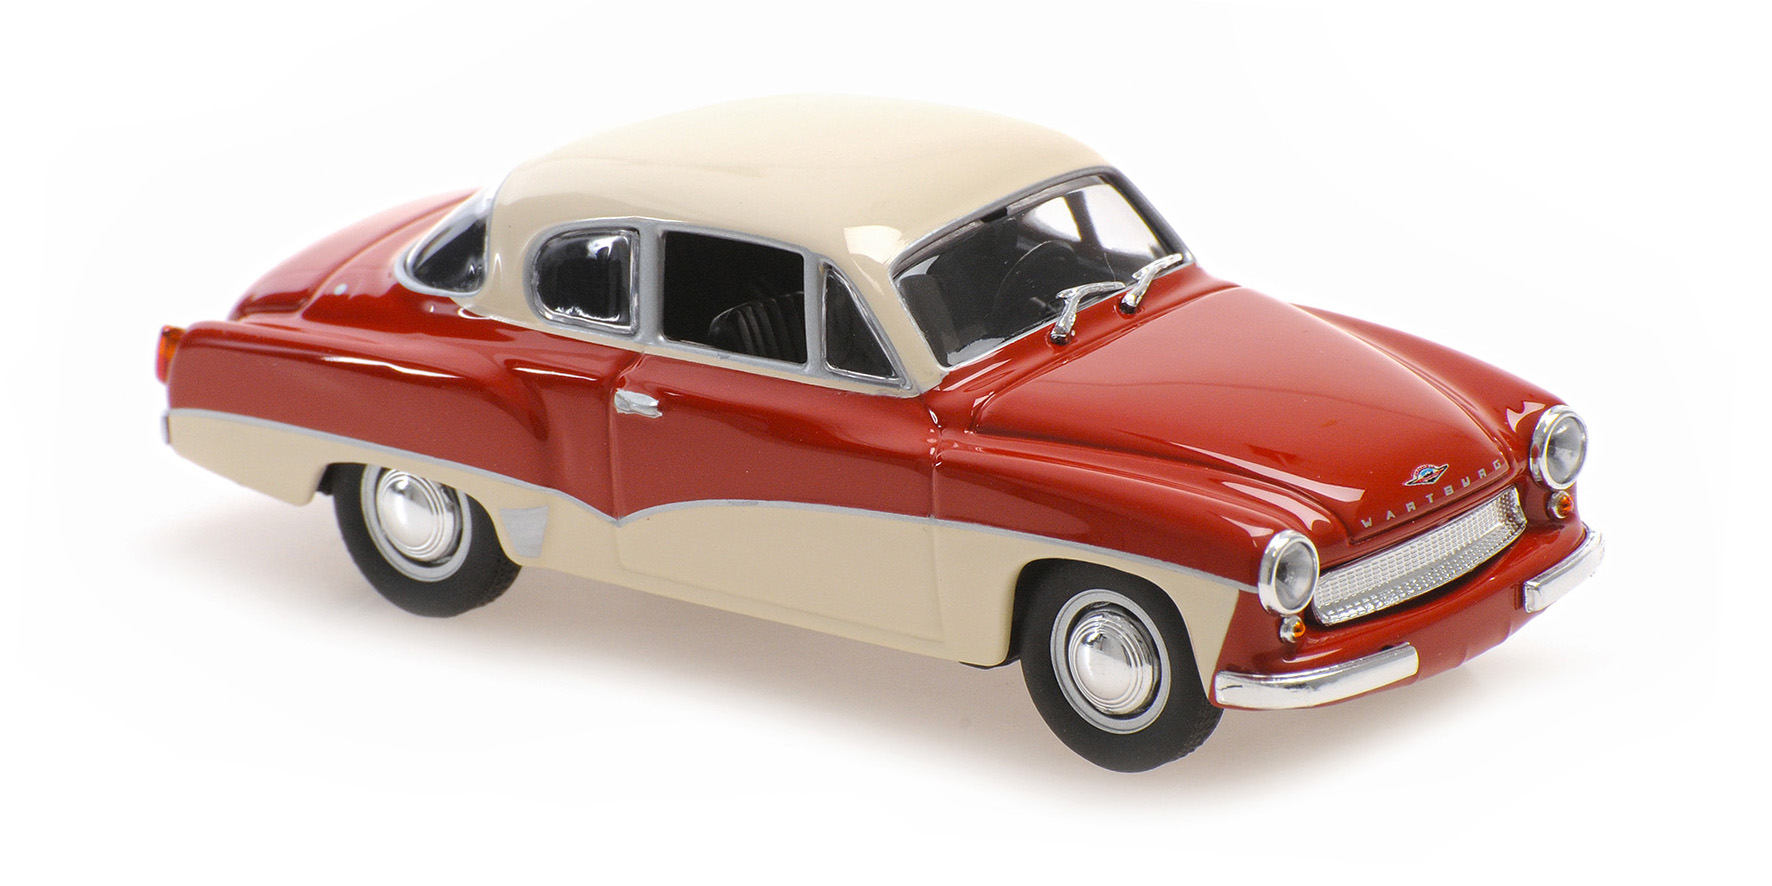 Wartburg A311 Coupe 1958 Rood/Wit - 1:43